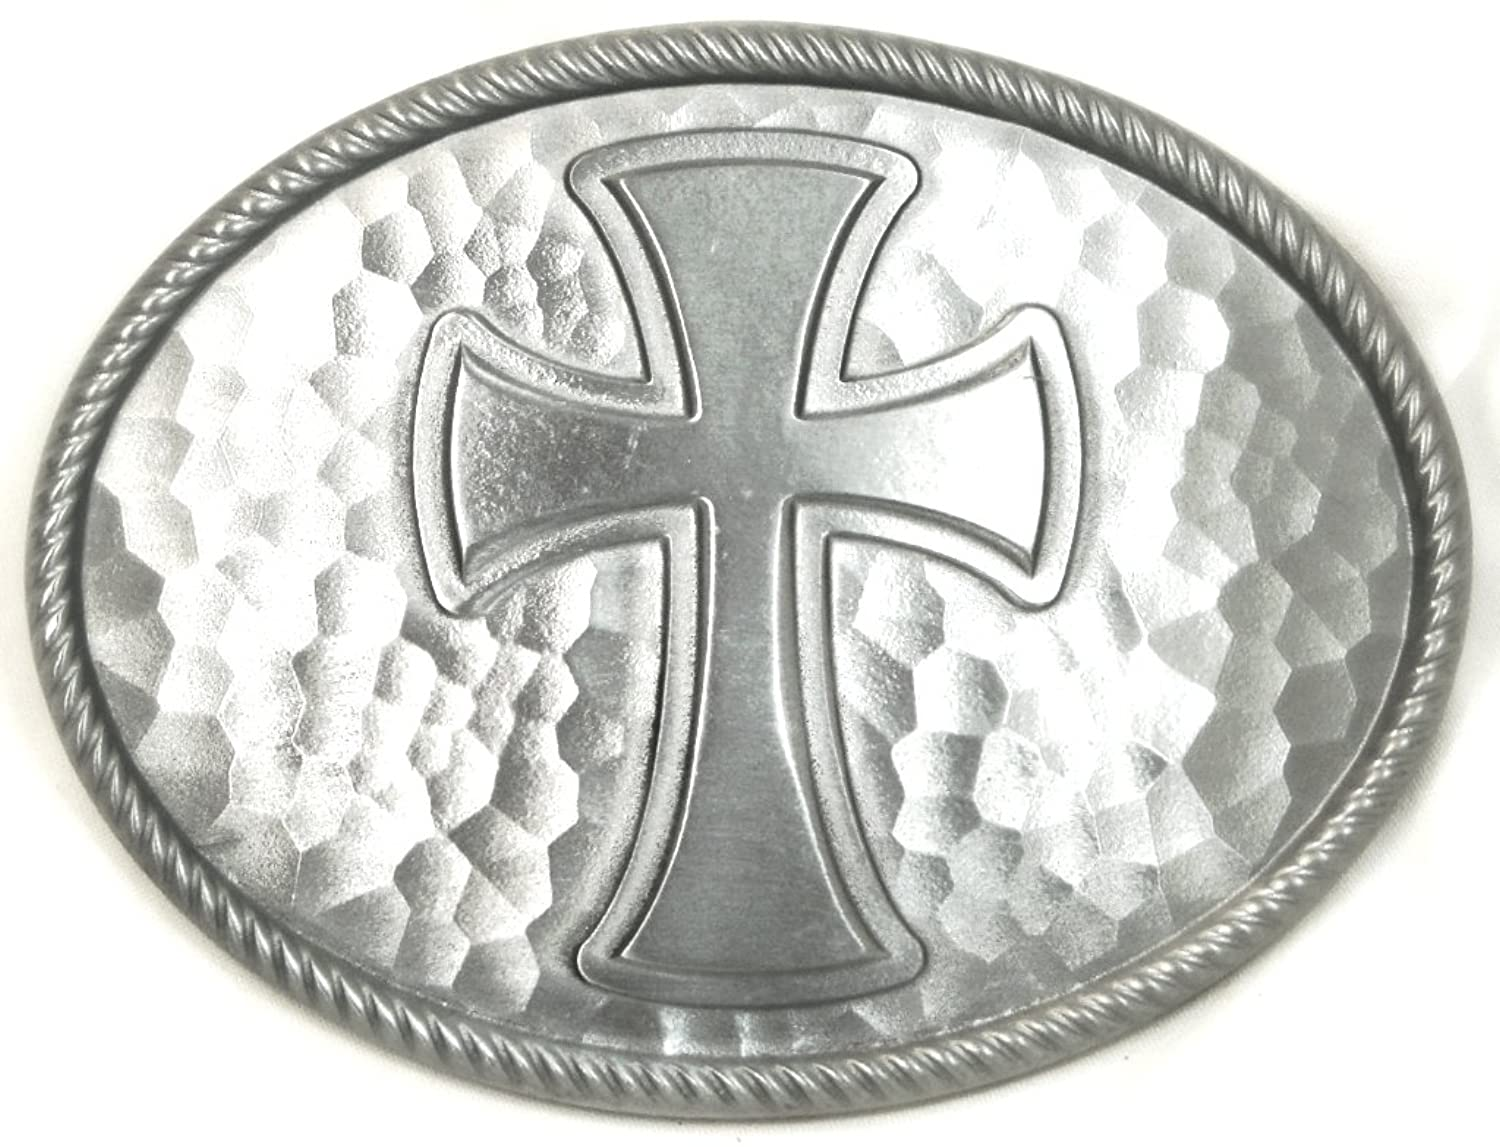 LARGE CLASSIC CROSS - HAMMERED PEWTER FINISH BELT BUCKLE